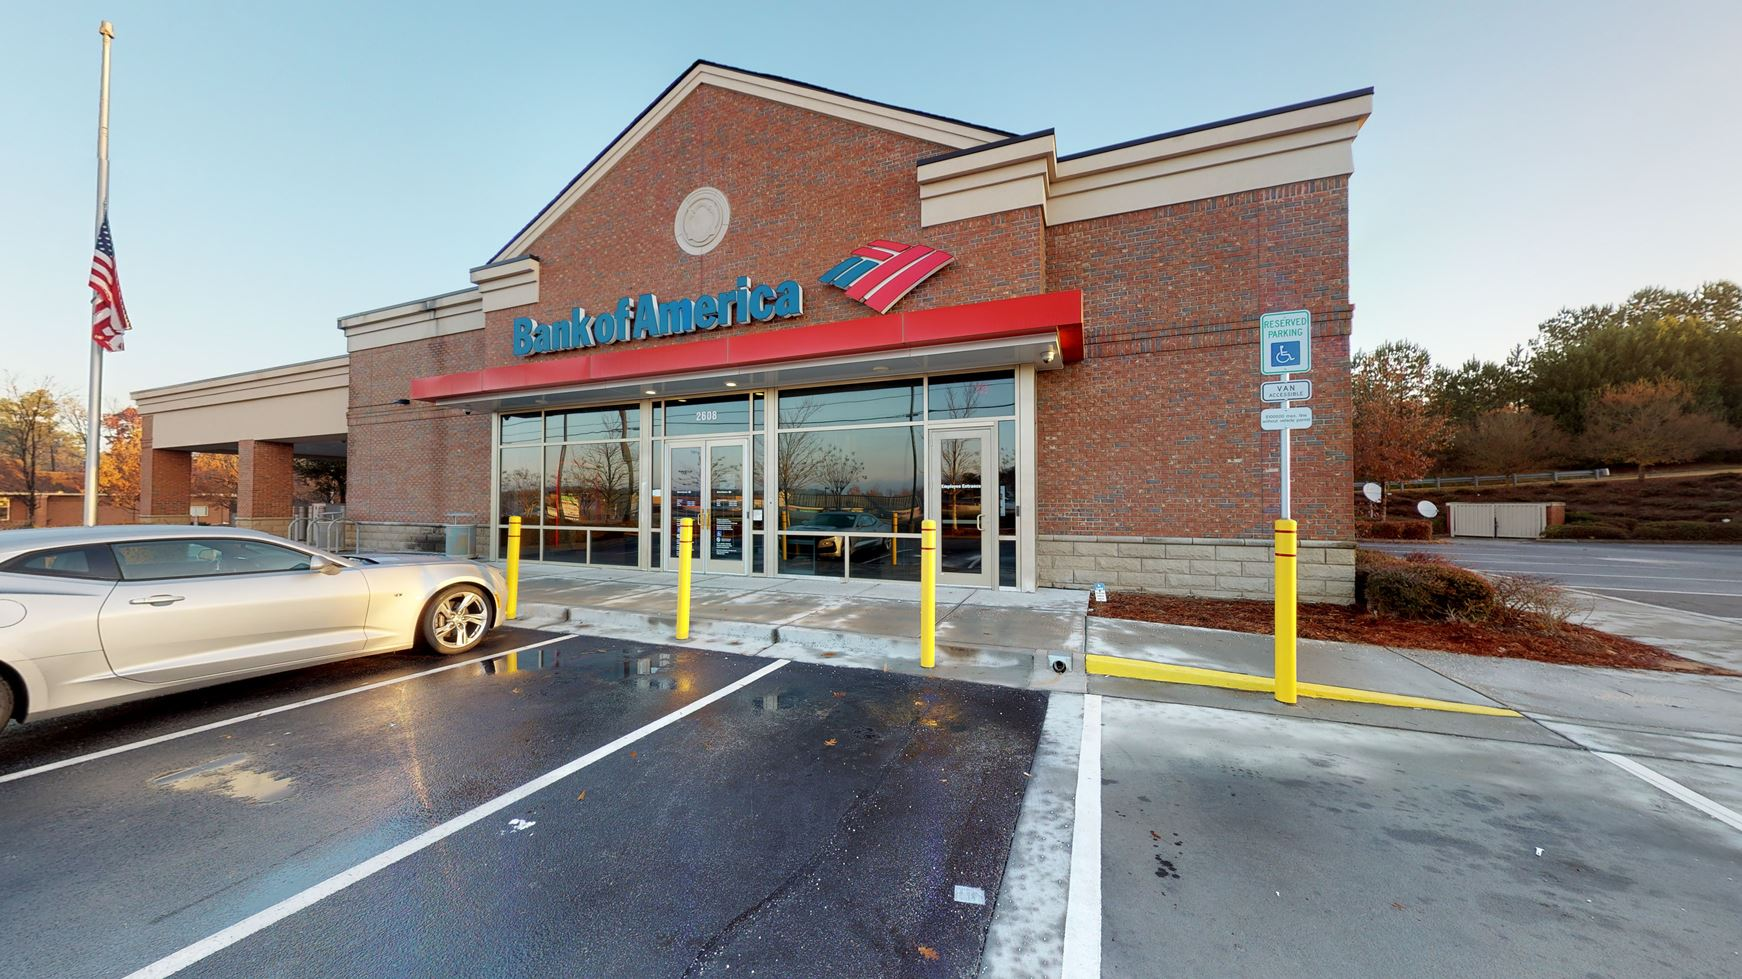 Bank of America financial center with drive-thru ATM   2608 Pleasant Hill Rd, Duluth, GA 30096